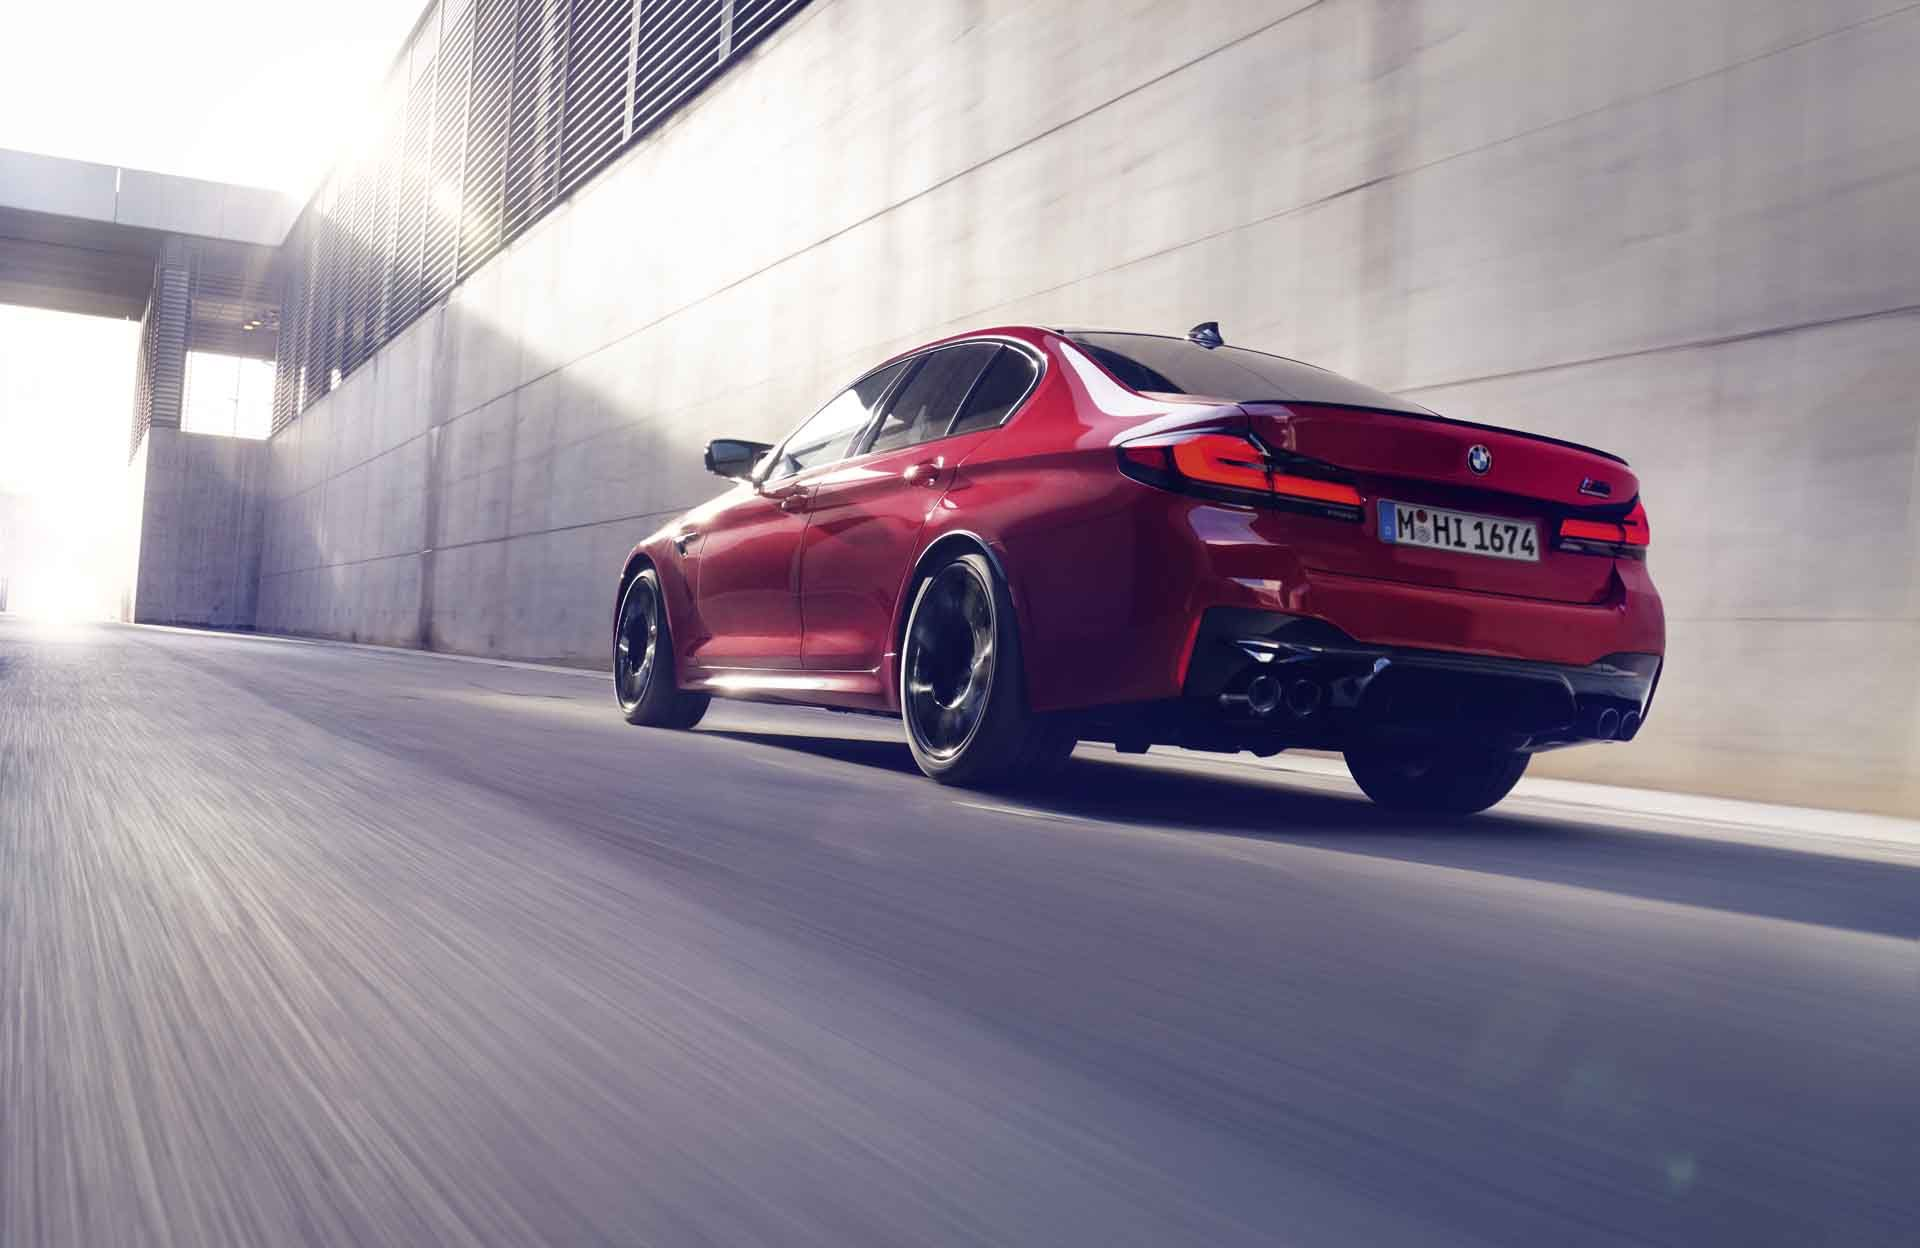 2021 Bmw M5 And M5 Competition Get Updated Tech Will Reach 189 Mph